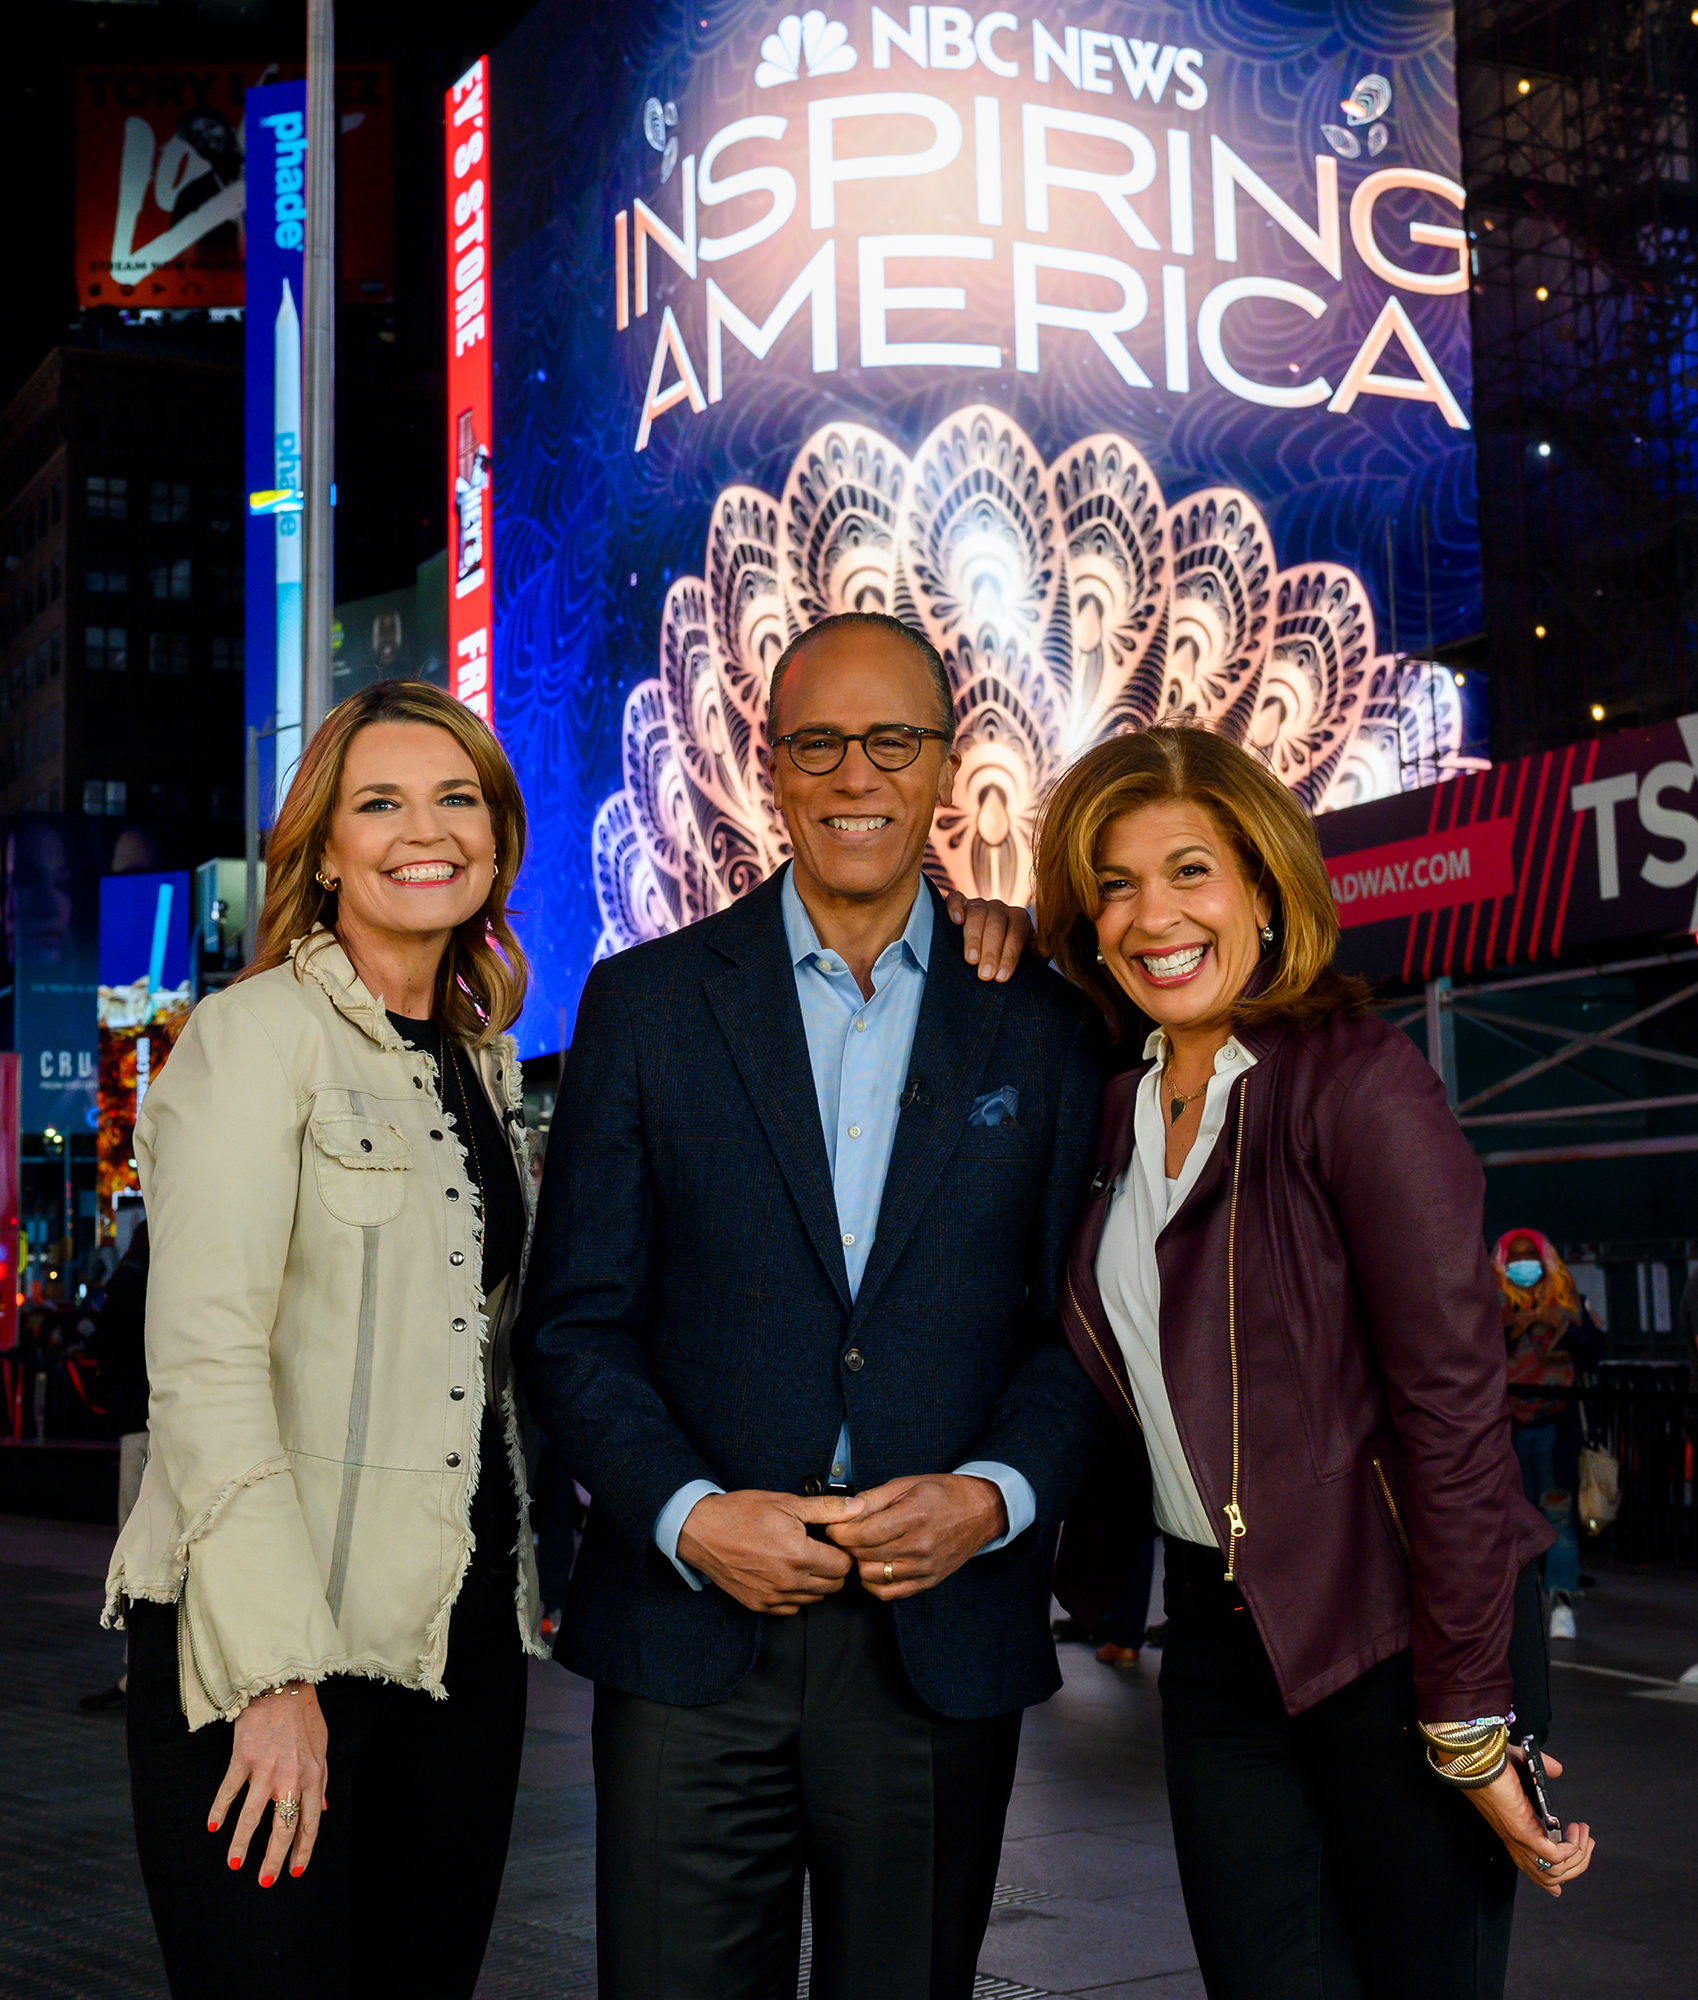 Savannah Guthrie, Lester Hold and Hoda Kotb